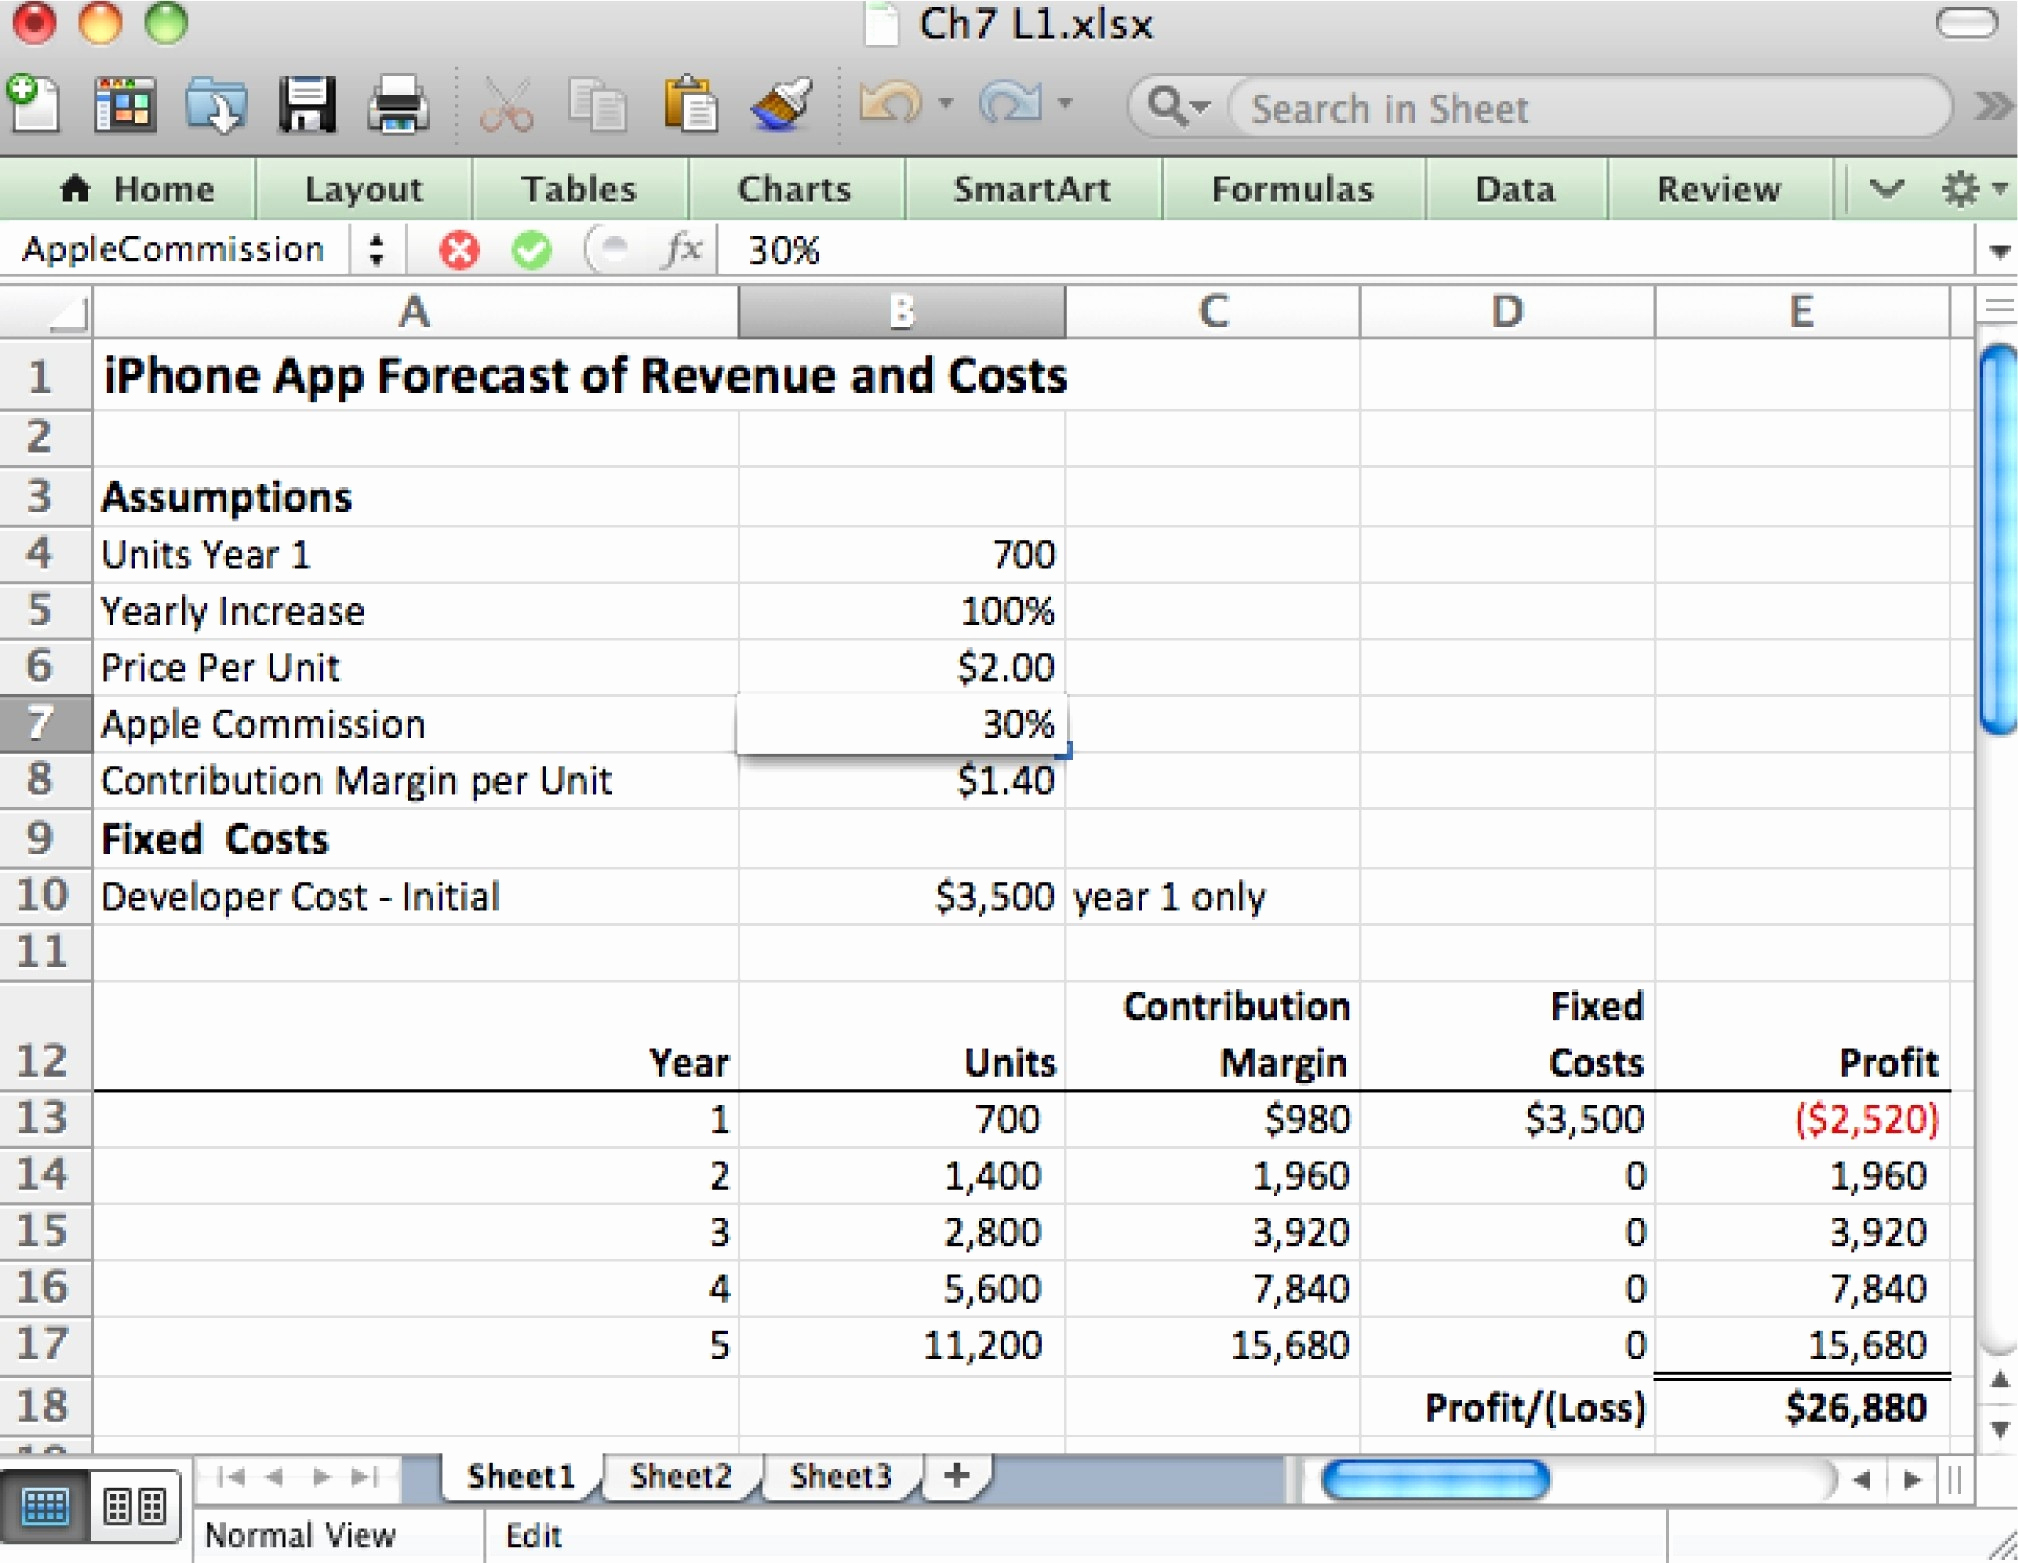 Fmla Leave Tracking Spreadsheet Spreadsheet Downloa Fmla Leave Tracking Spreadsheet